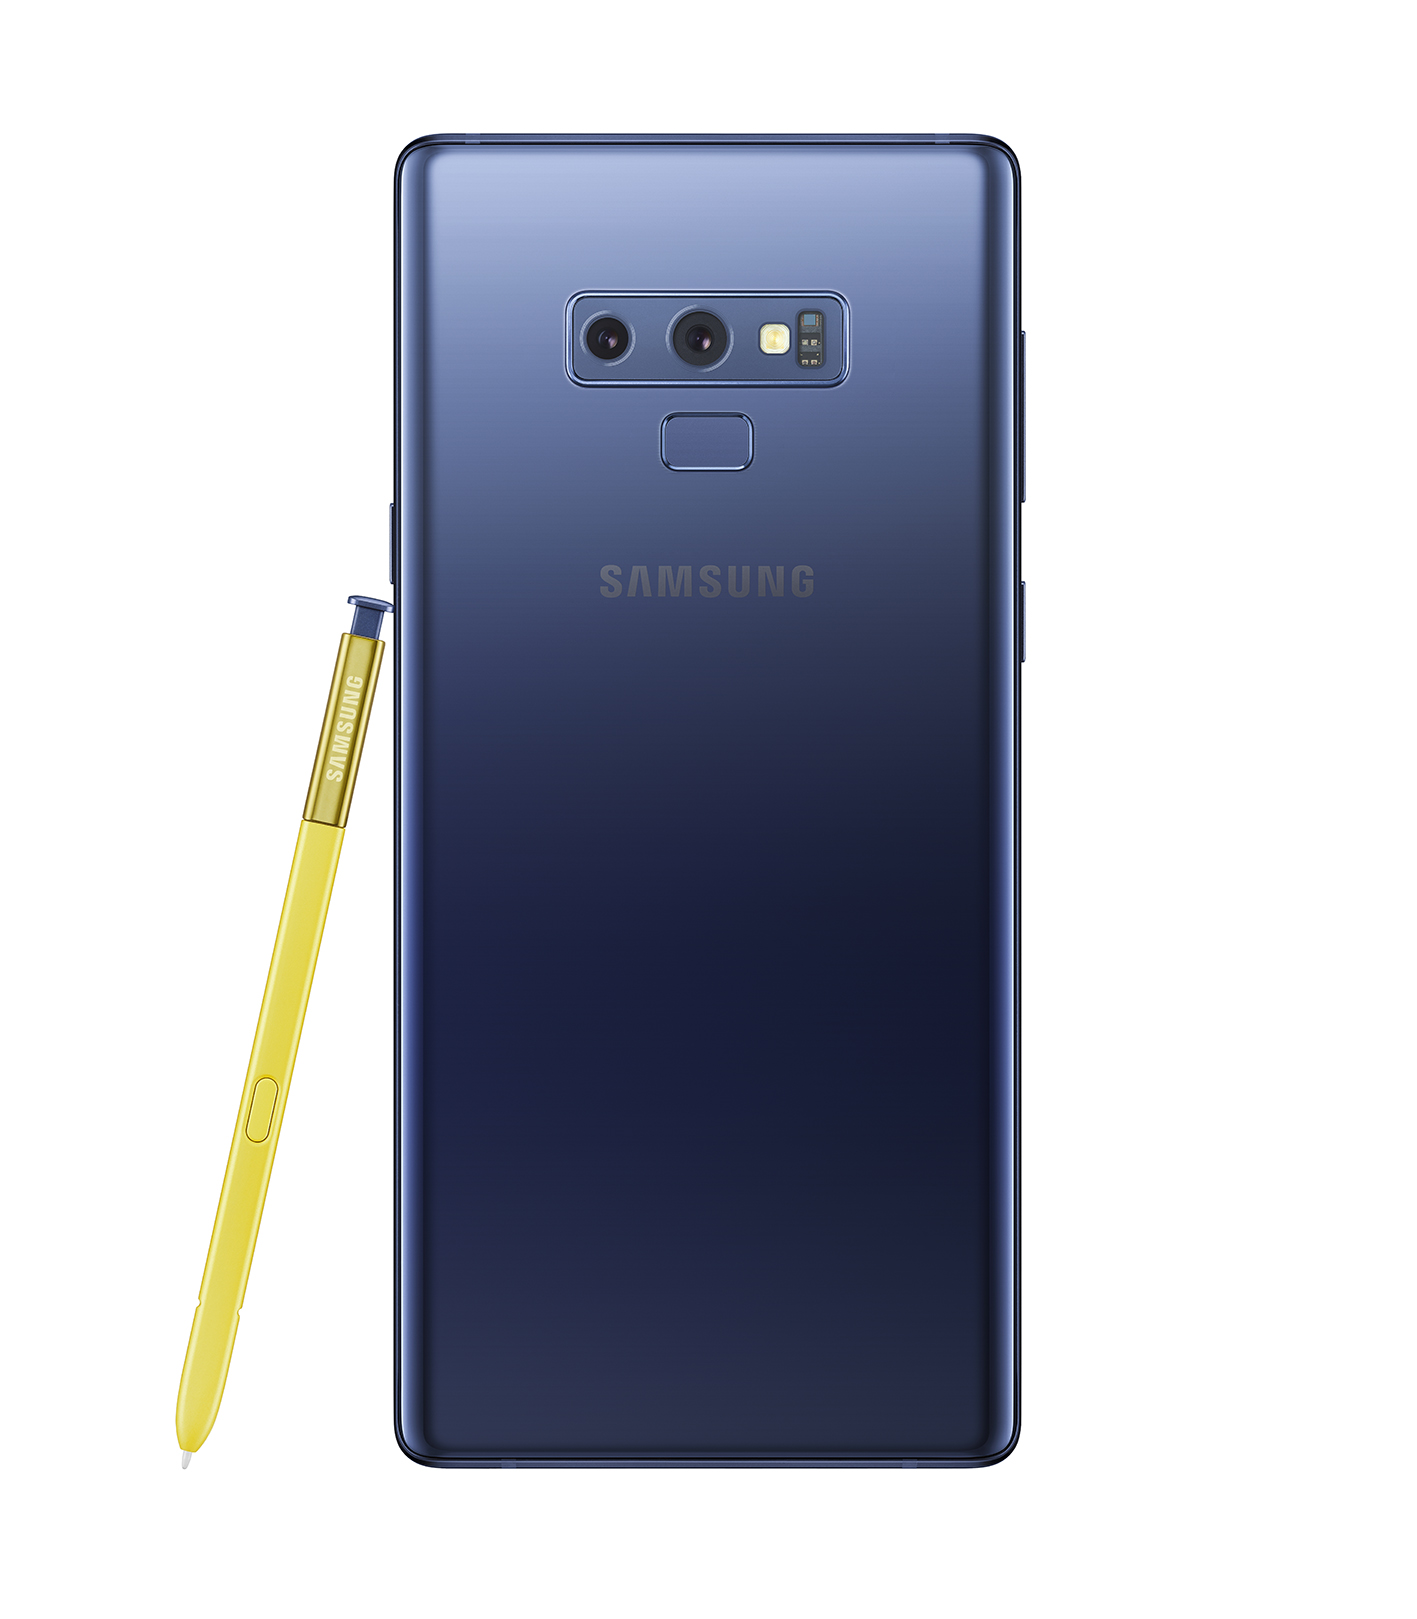 Top 6 smartphones for business 2018: Samsung Galaxy Note 9